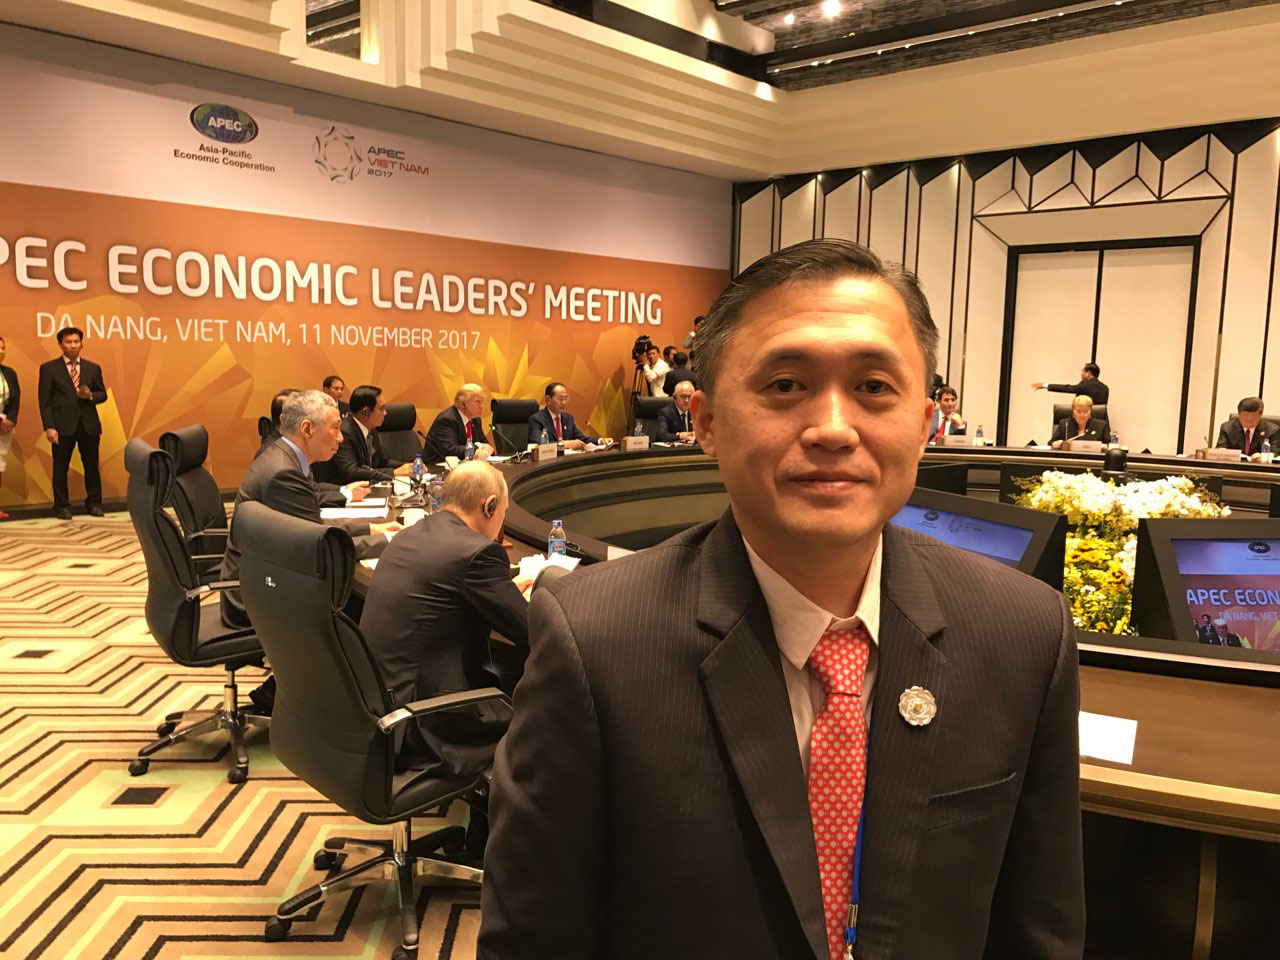 POTUS HERE. SAP Bong Go has a selfie in the APEC event that put US President Donald Trump and Philippine President Rodrigo Duterte in the same room for the first time.